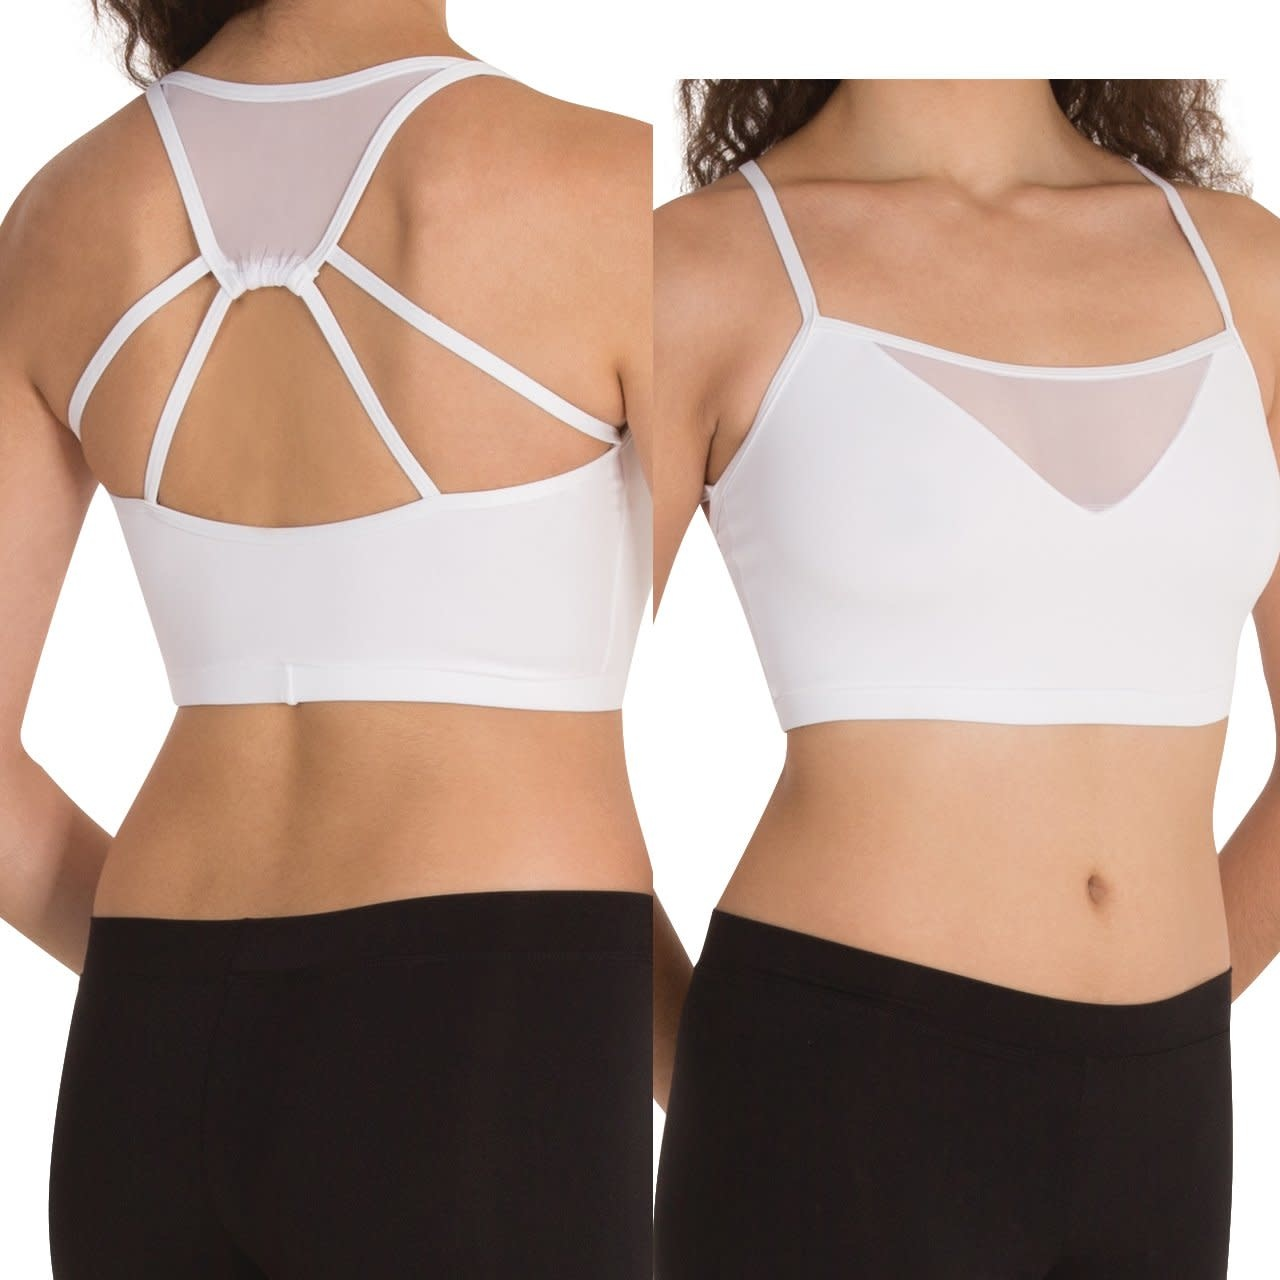 Body Wrappers BW9006 Mesh Camisole Crop Top - M